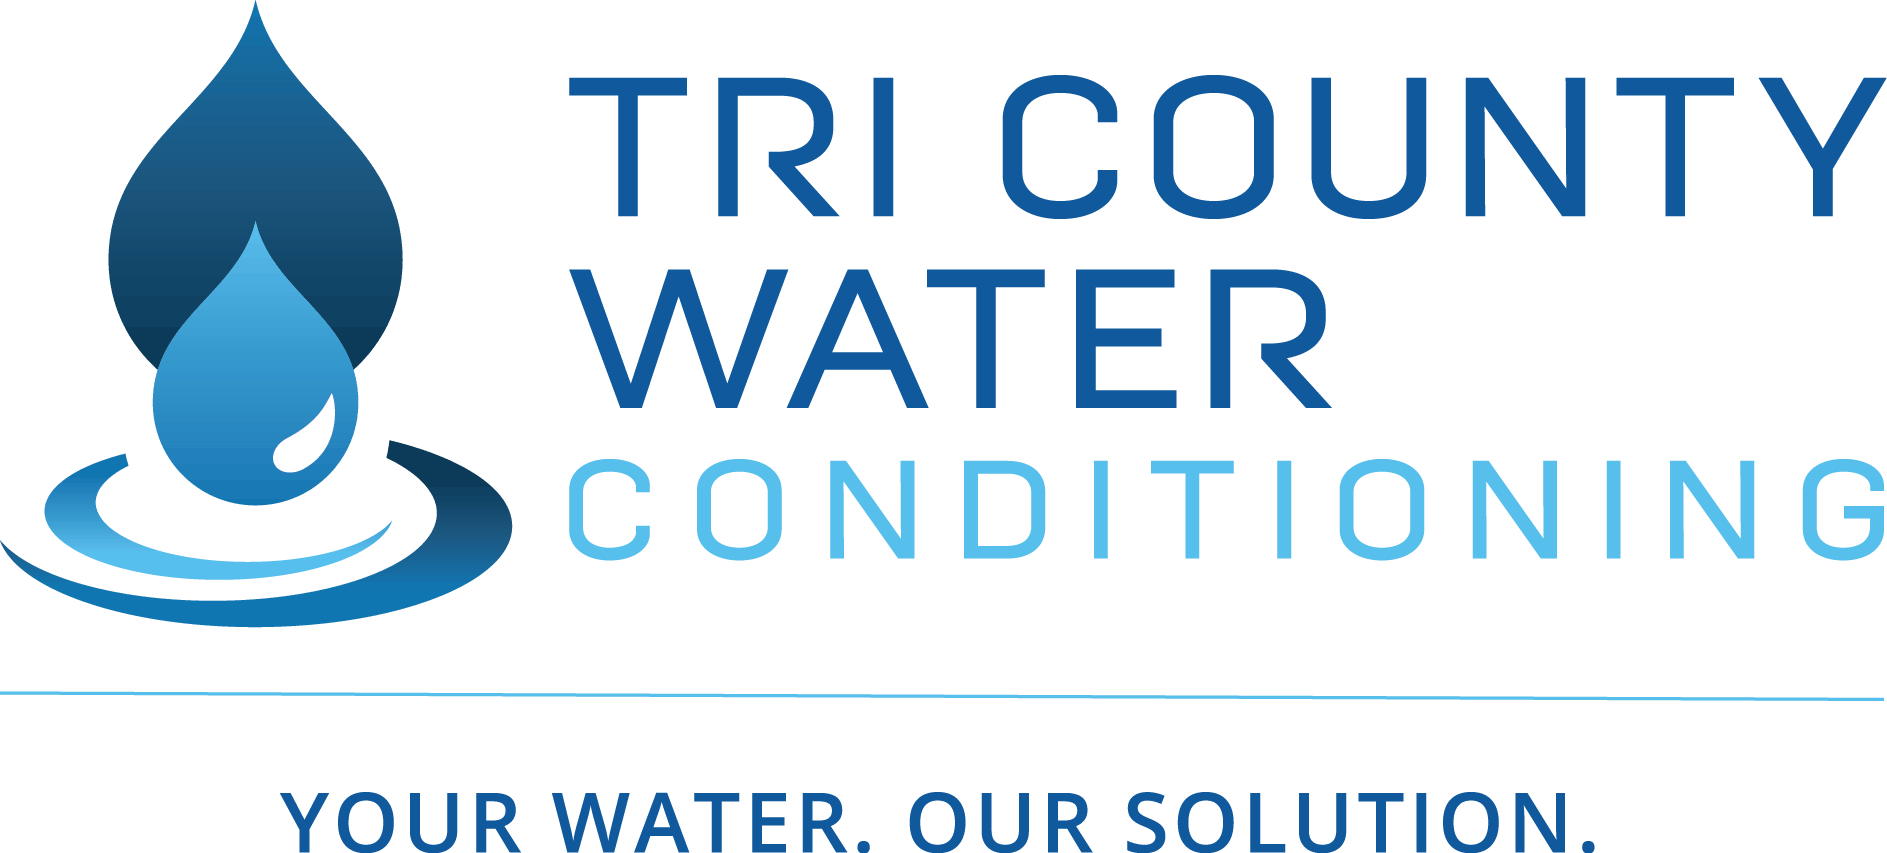 Tri County Water Conditioning Softeners Refiners